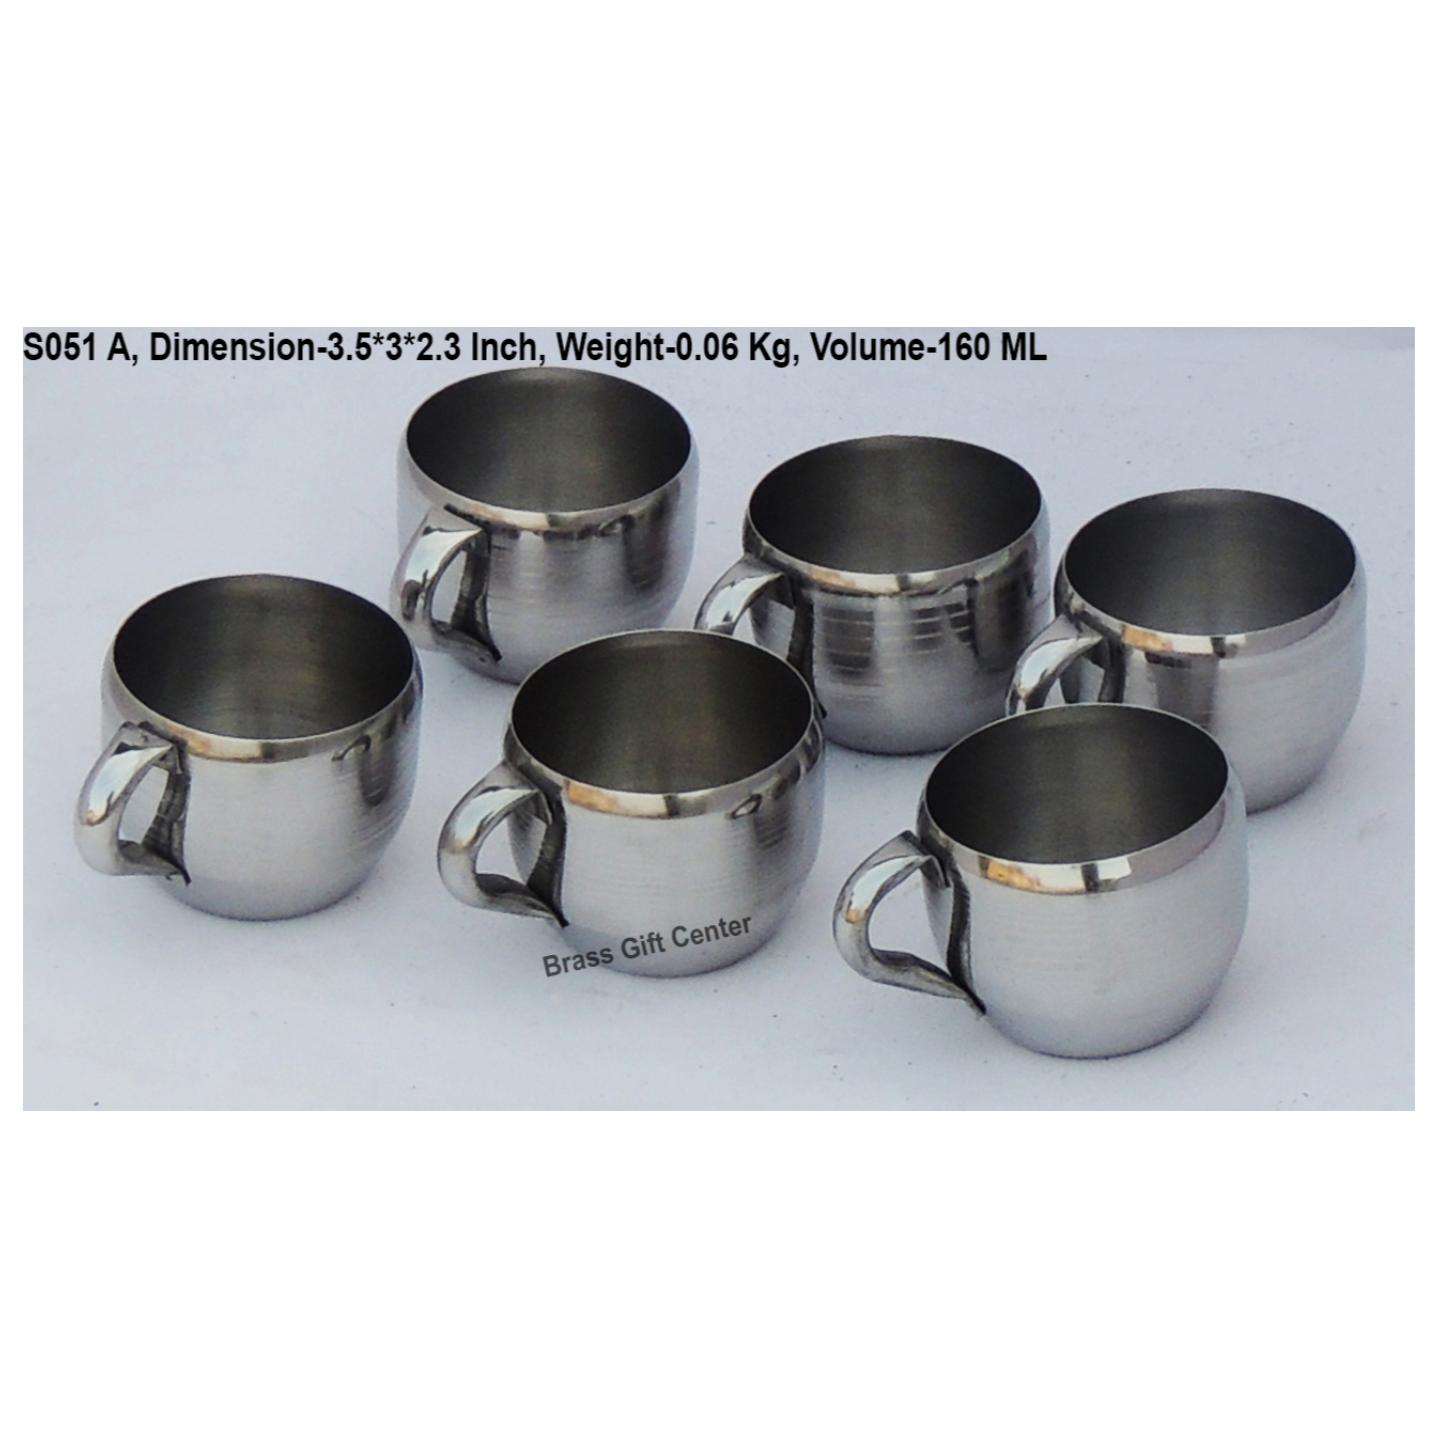 Steel Water Drinking Cup, Capacity 160 ML Set of 6 Pc. S051 A